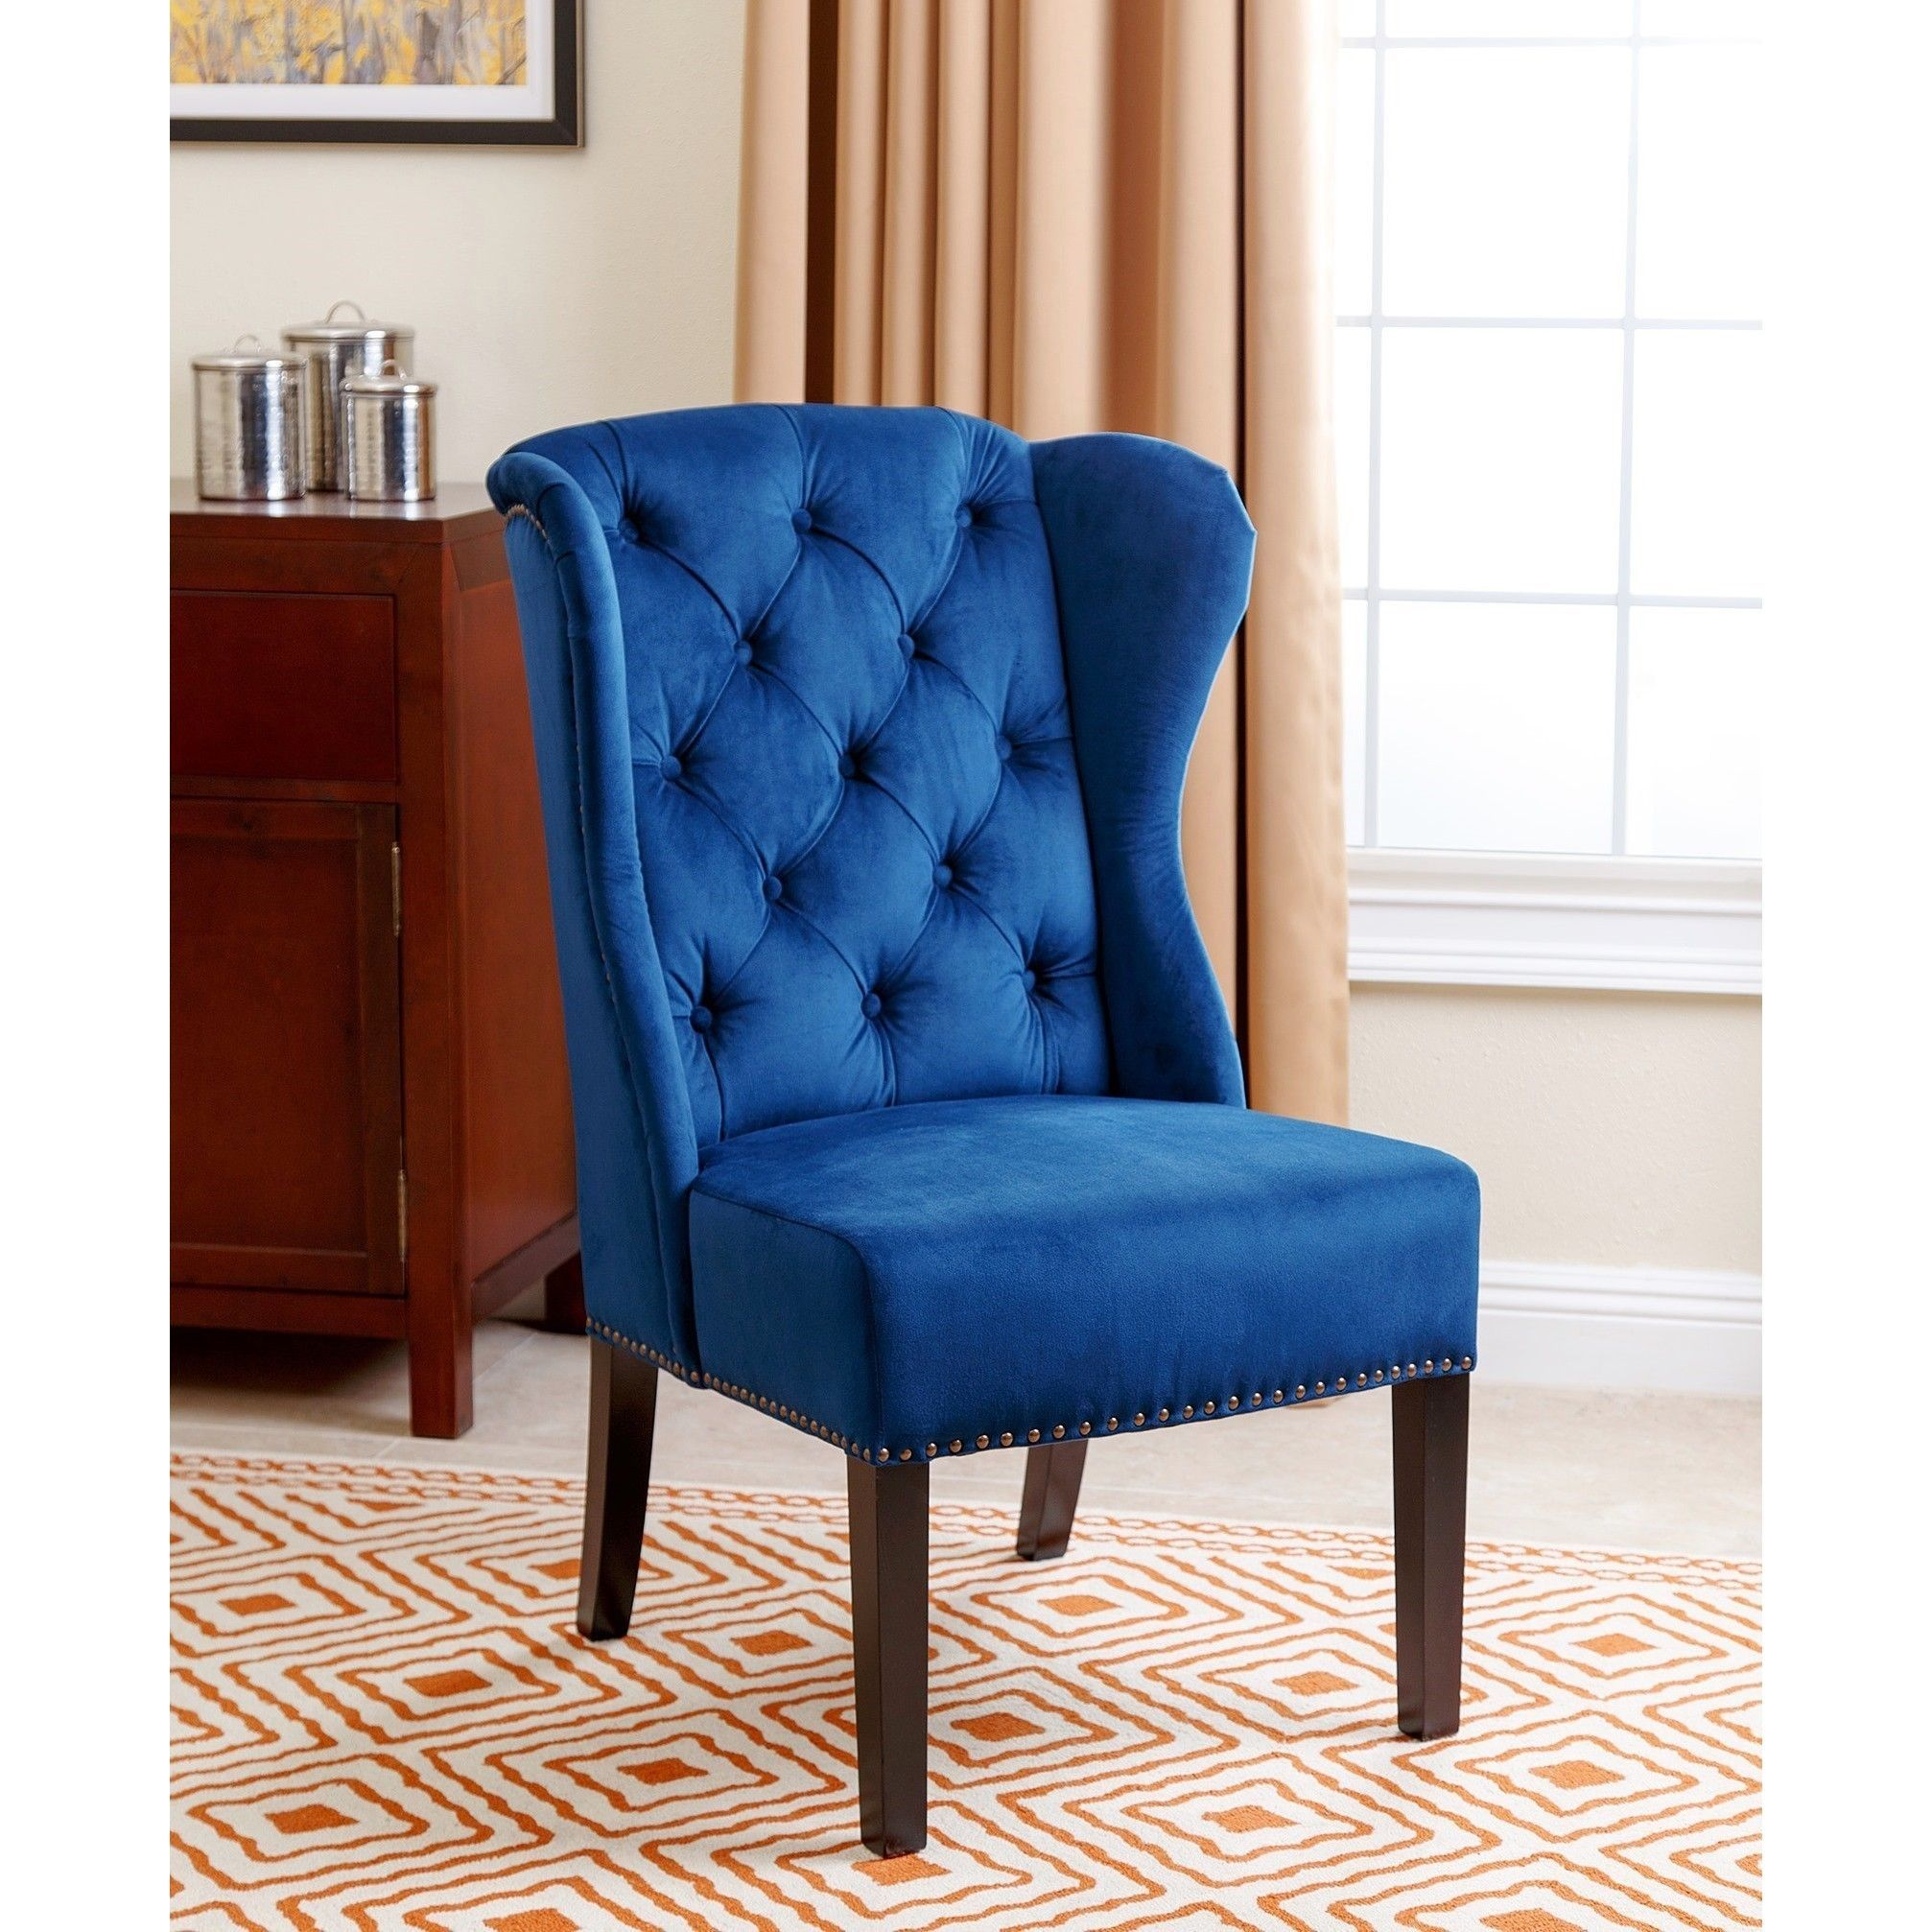 Navy Dining Room Chairs Abbyson Sierra Tufted Navy Blue Velvet Wingback Dining